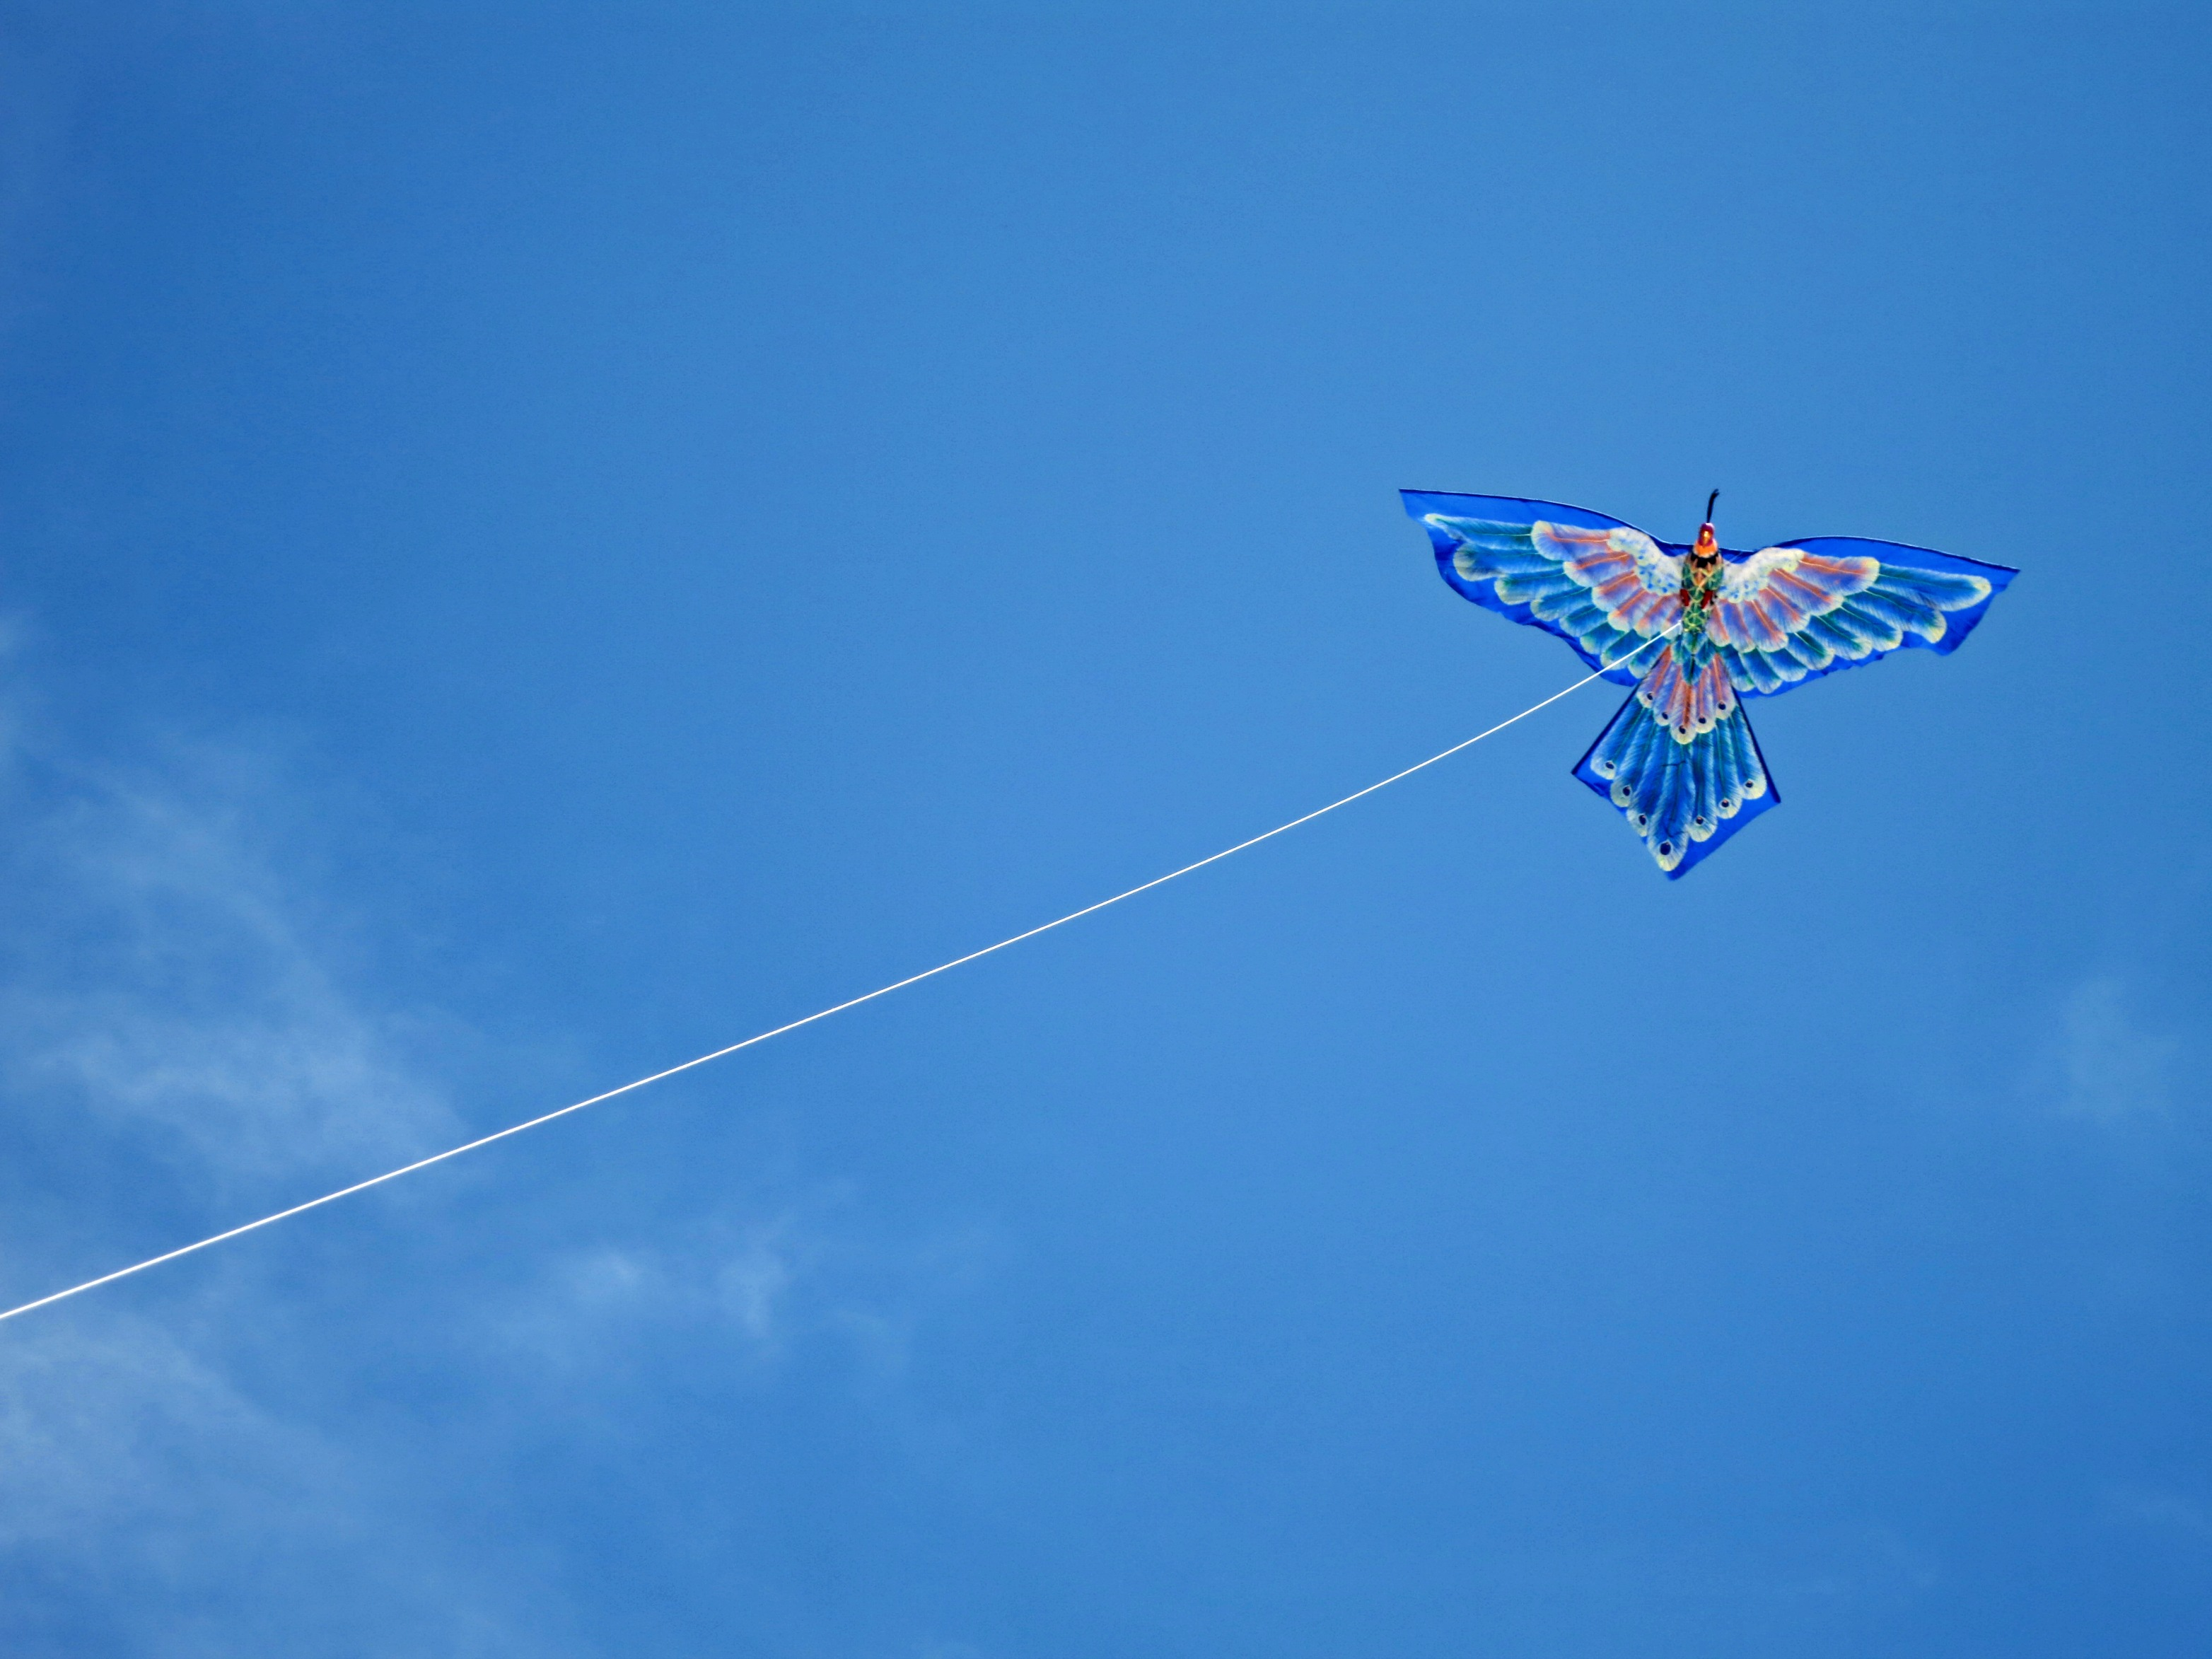 flying a kite on a balinese beach is basically like getting in a